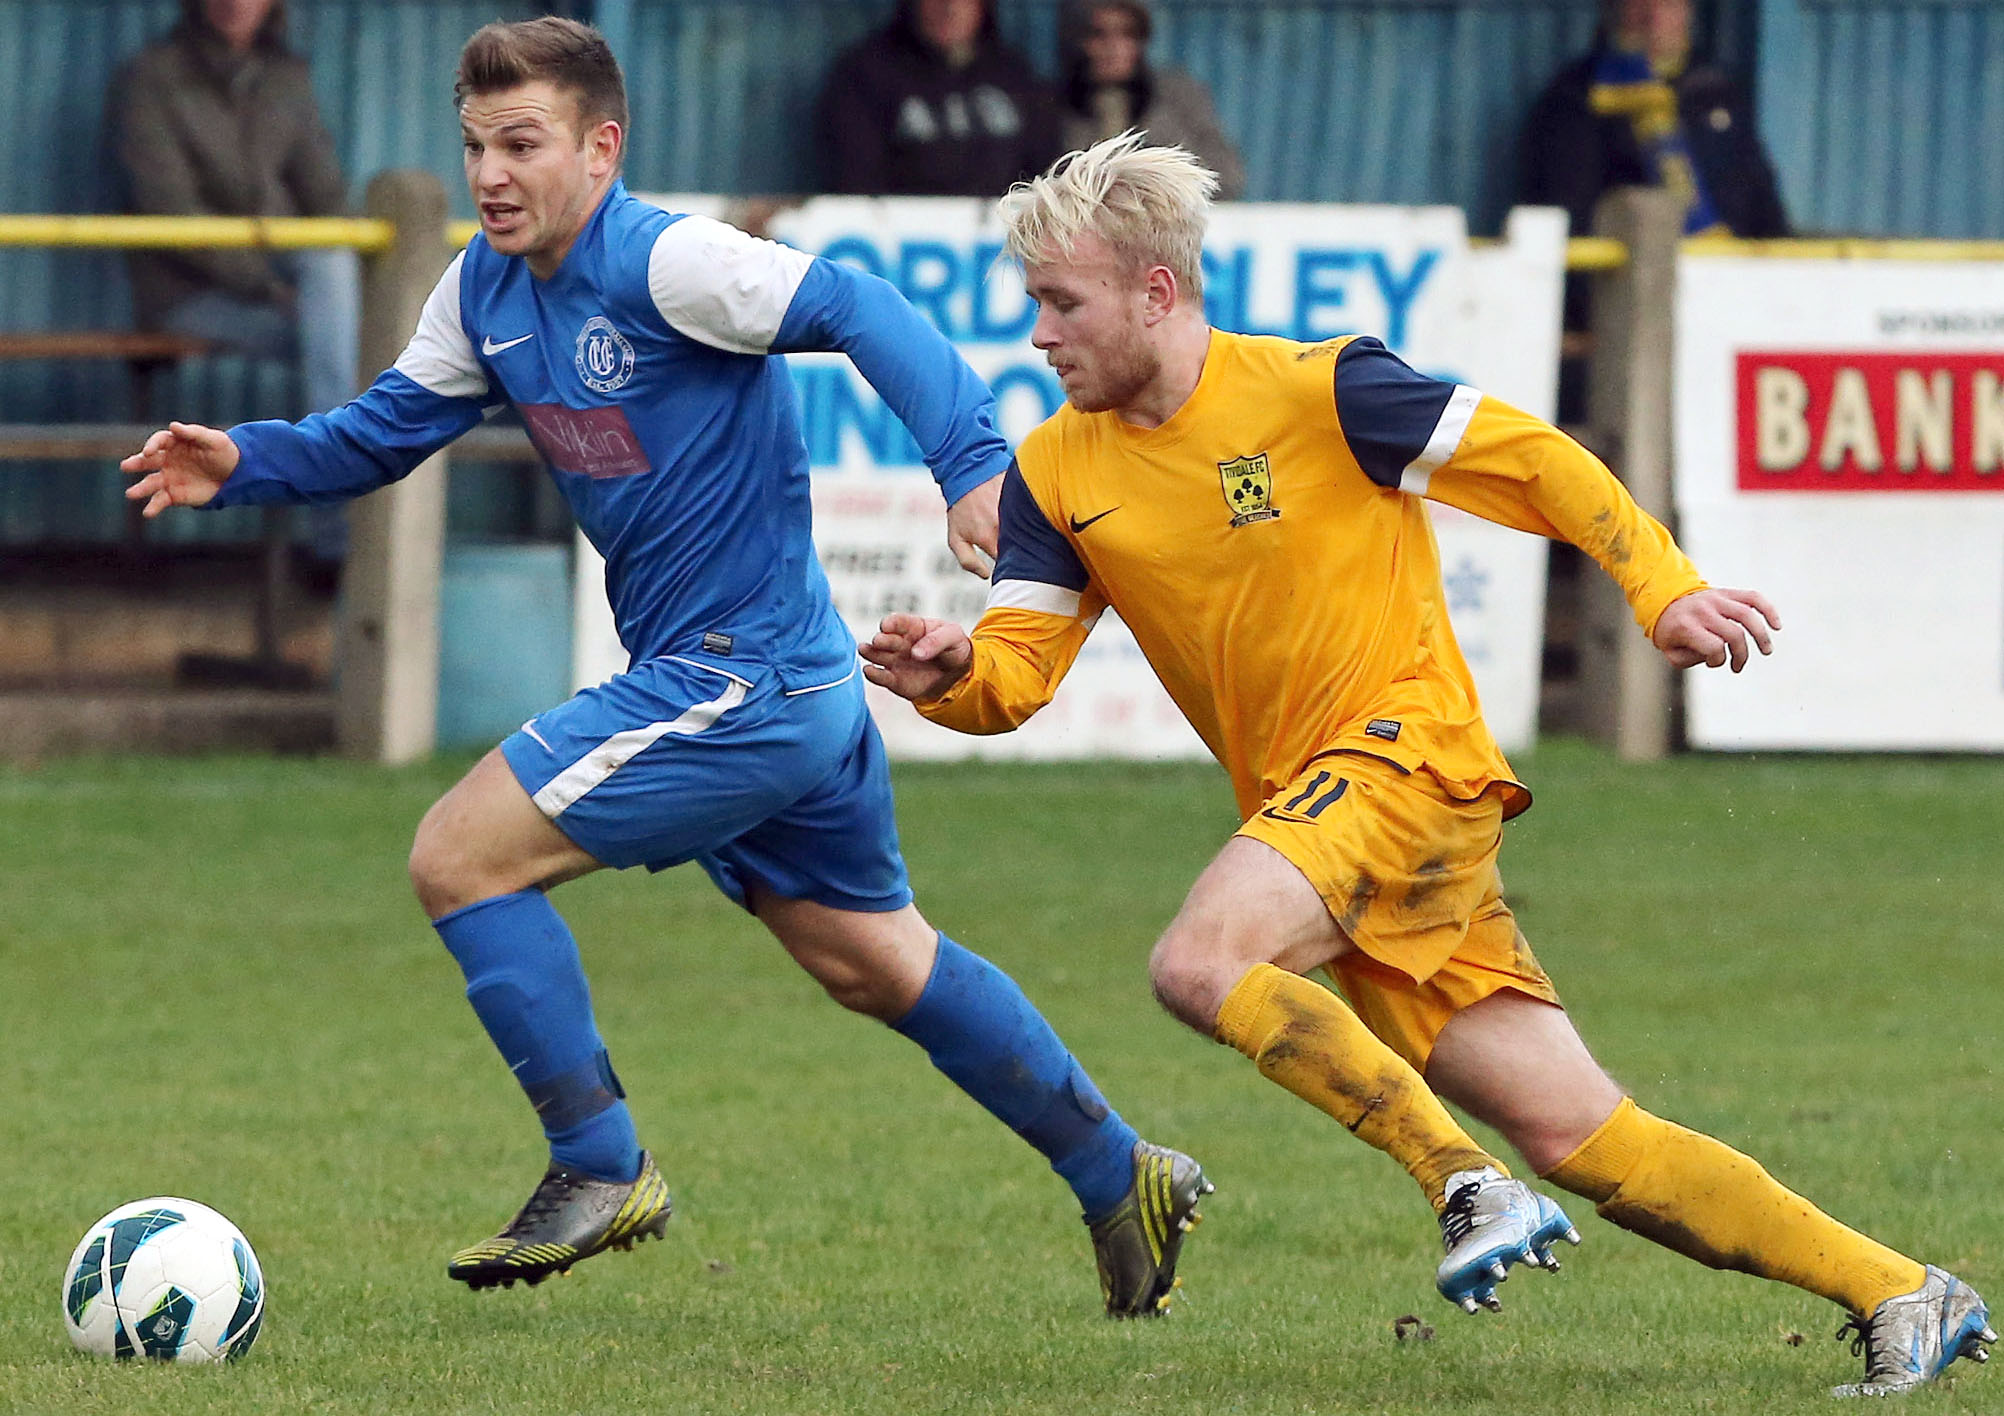 Causeway (in the blue) clash with league leaders Tividale